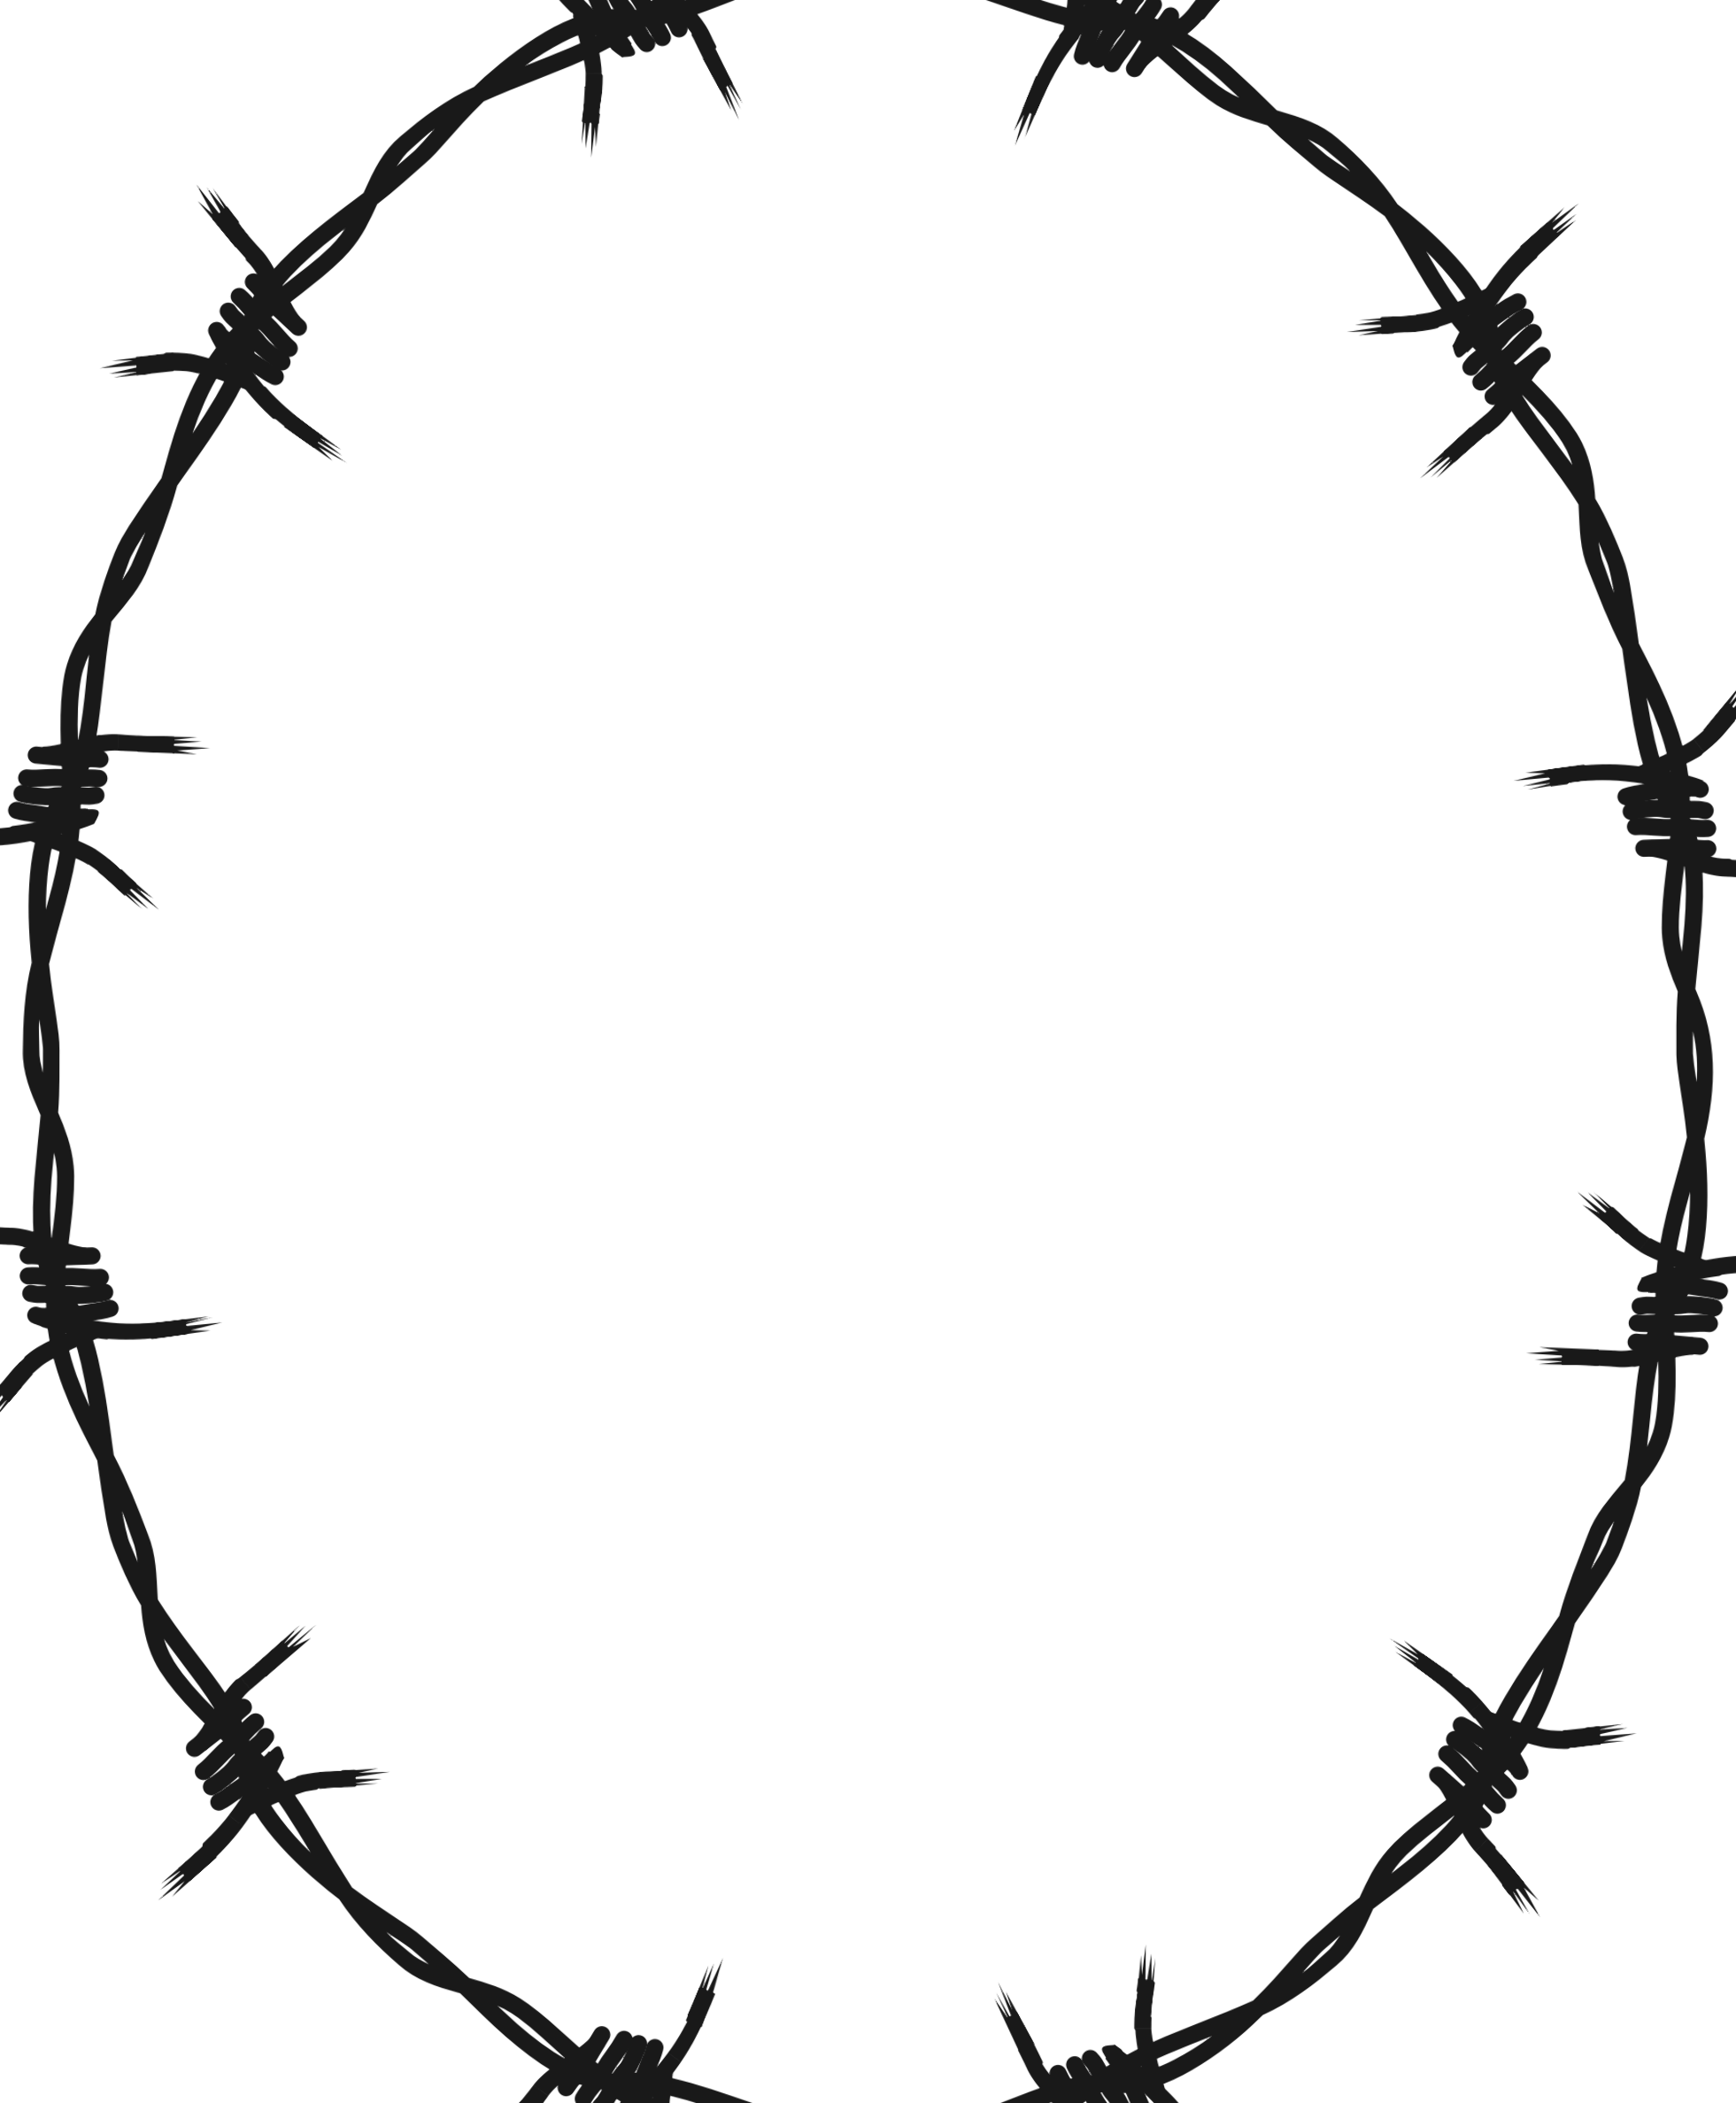 Barbed Wire Ellipse Frame Border By Gdj Barbed Wire Tattoos Barbed Wire Arm Drawing